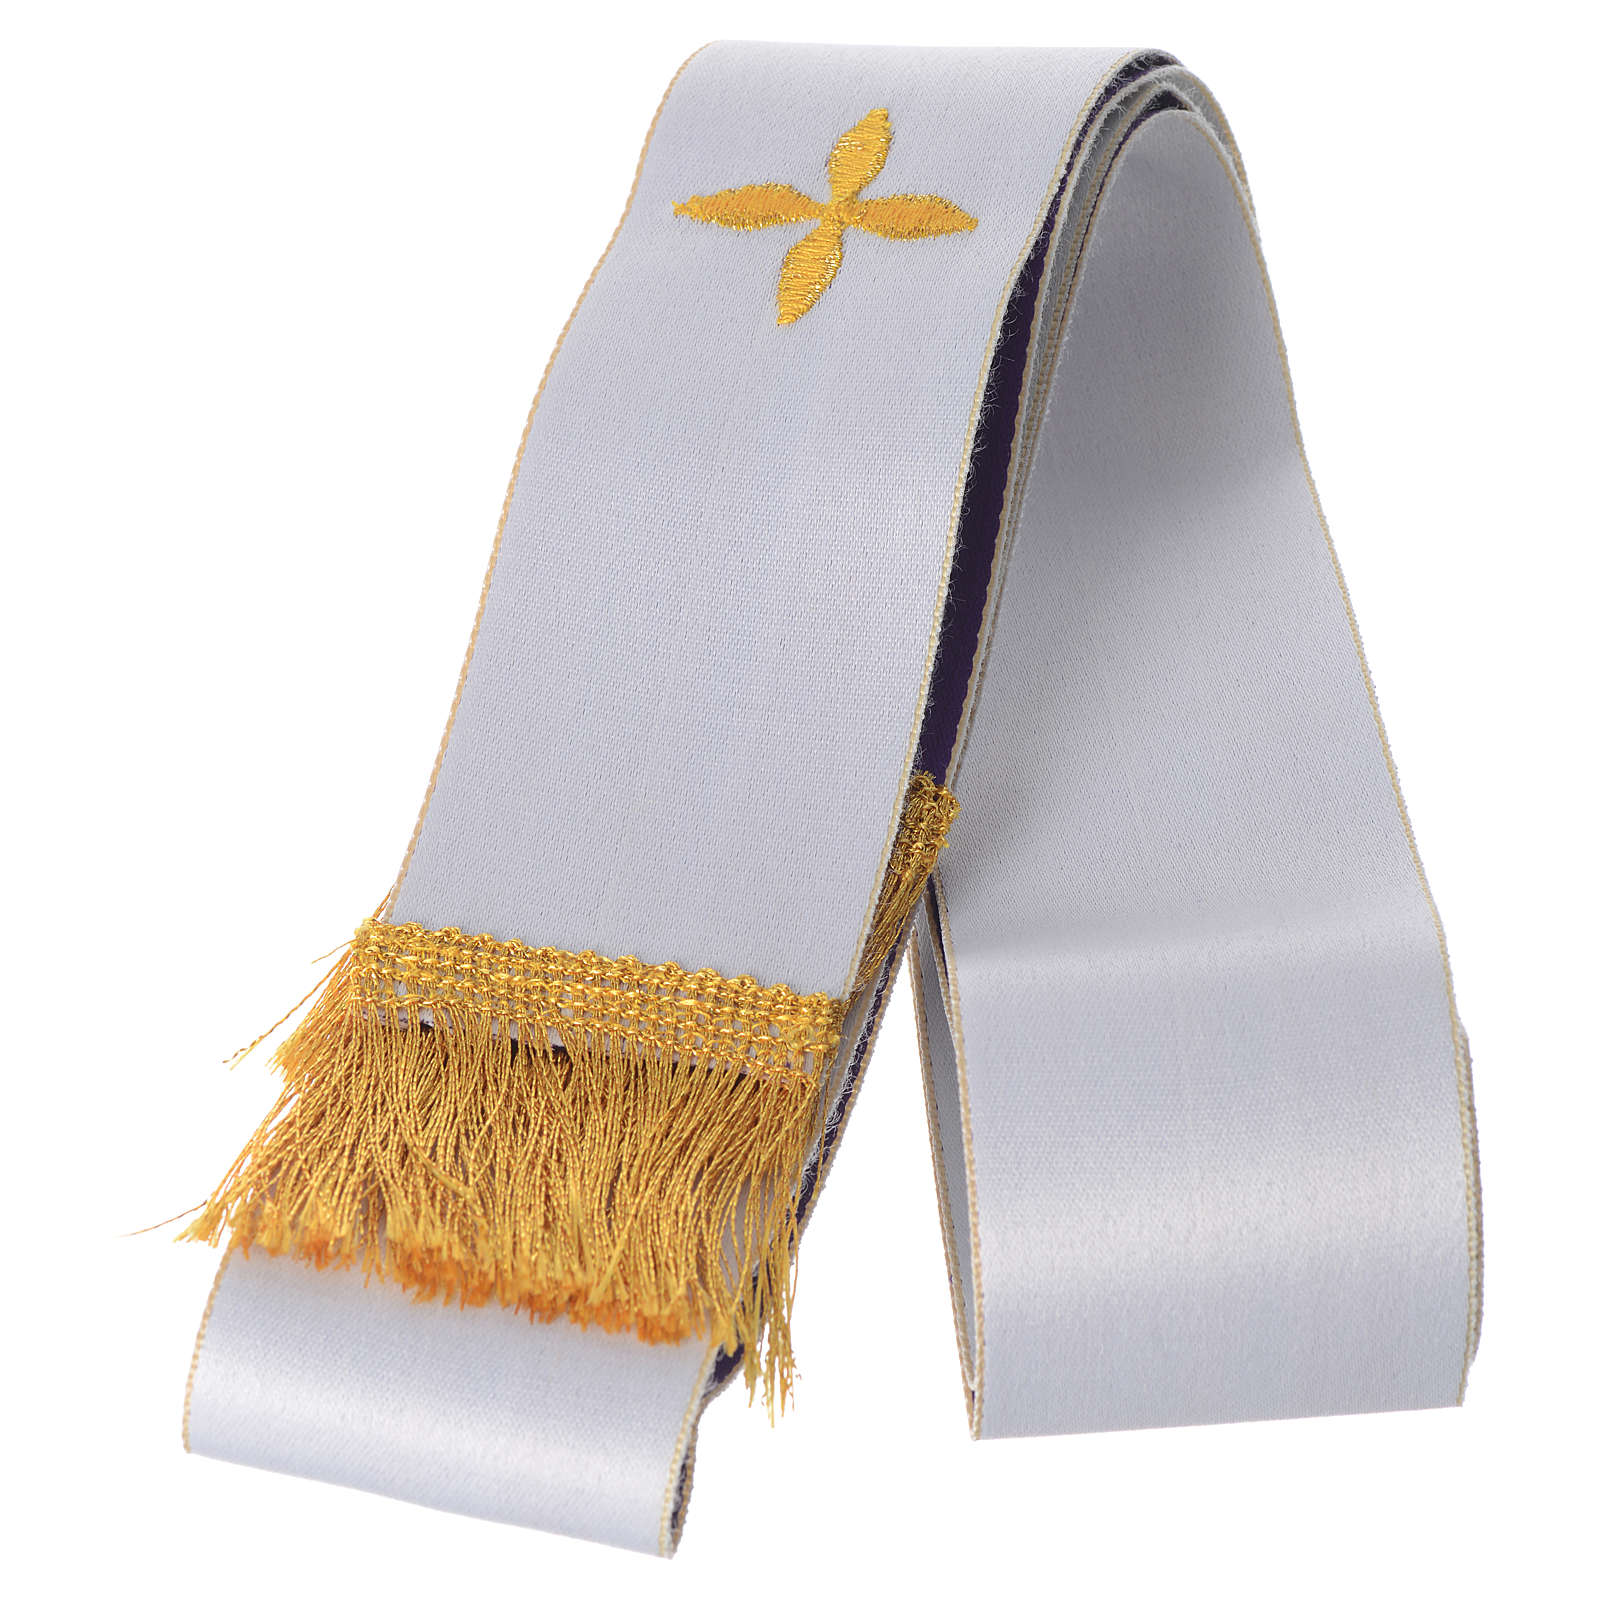 Small clergy Stole in White and Purple, Embroidered 4